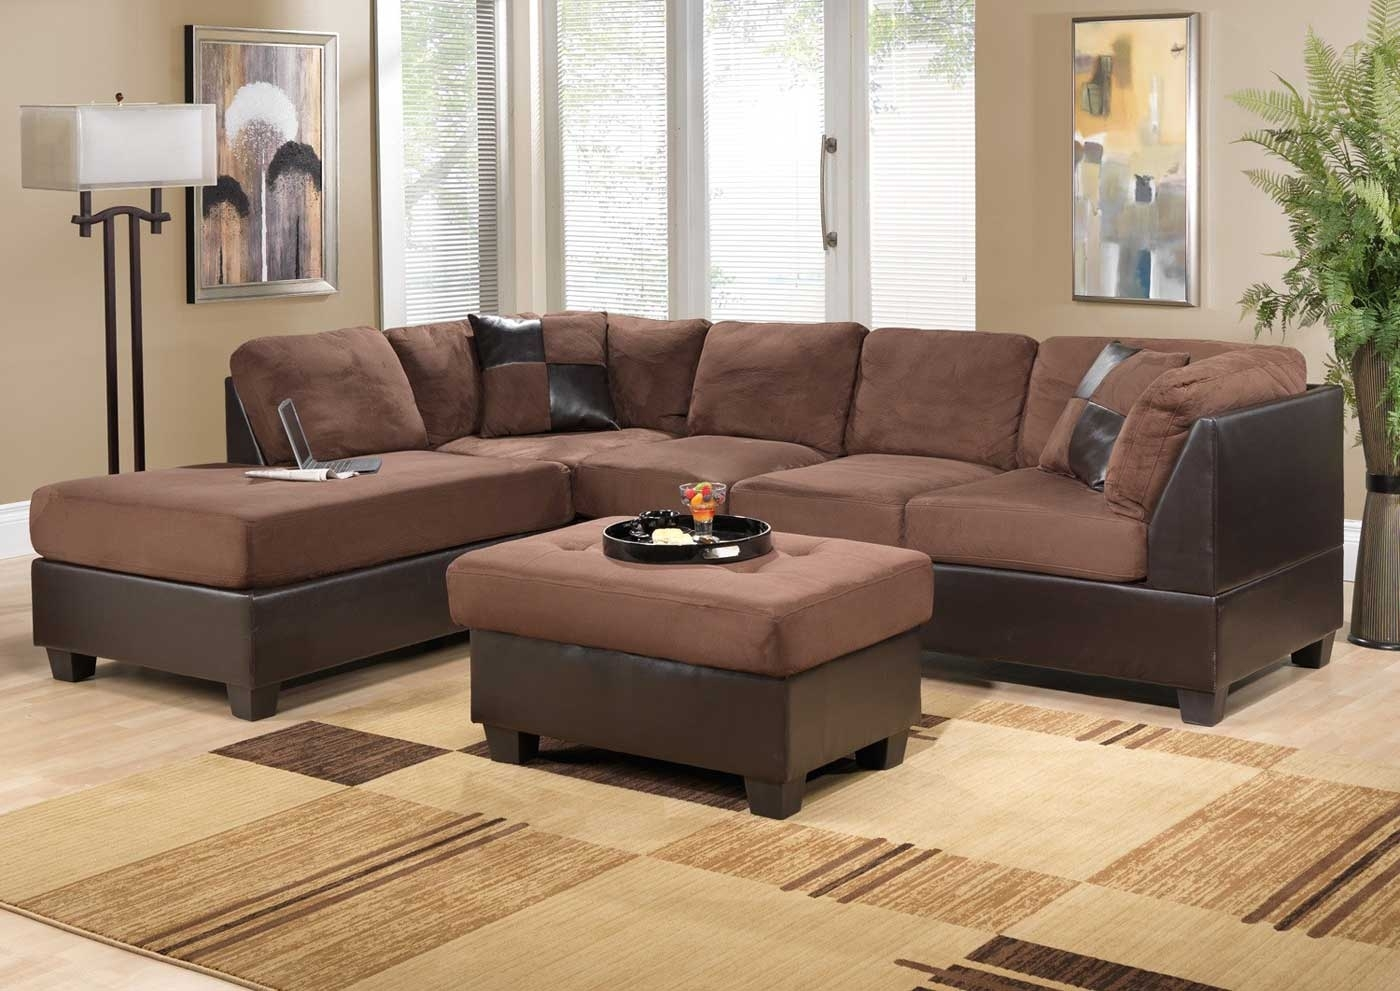 Furniture : Sectional Sofa Under 200 Corner Couch Tao Beach Recliner with Vt Sectional Sofas (Image 9 of 10)